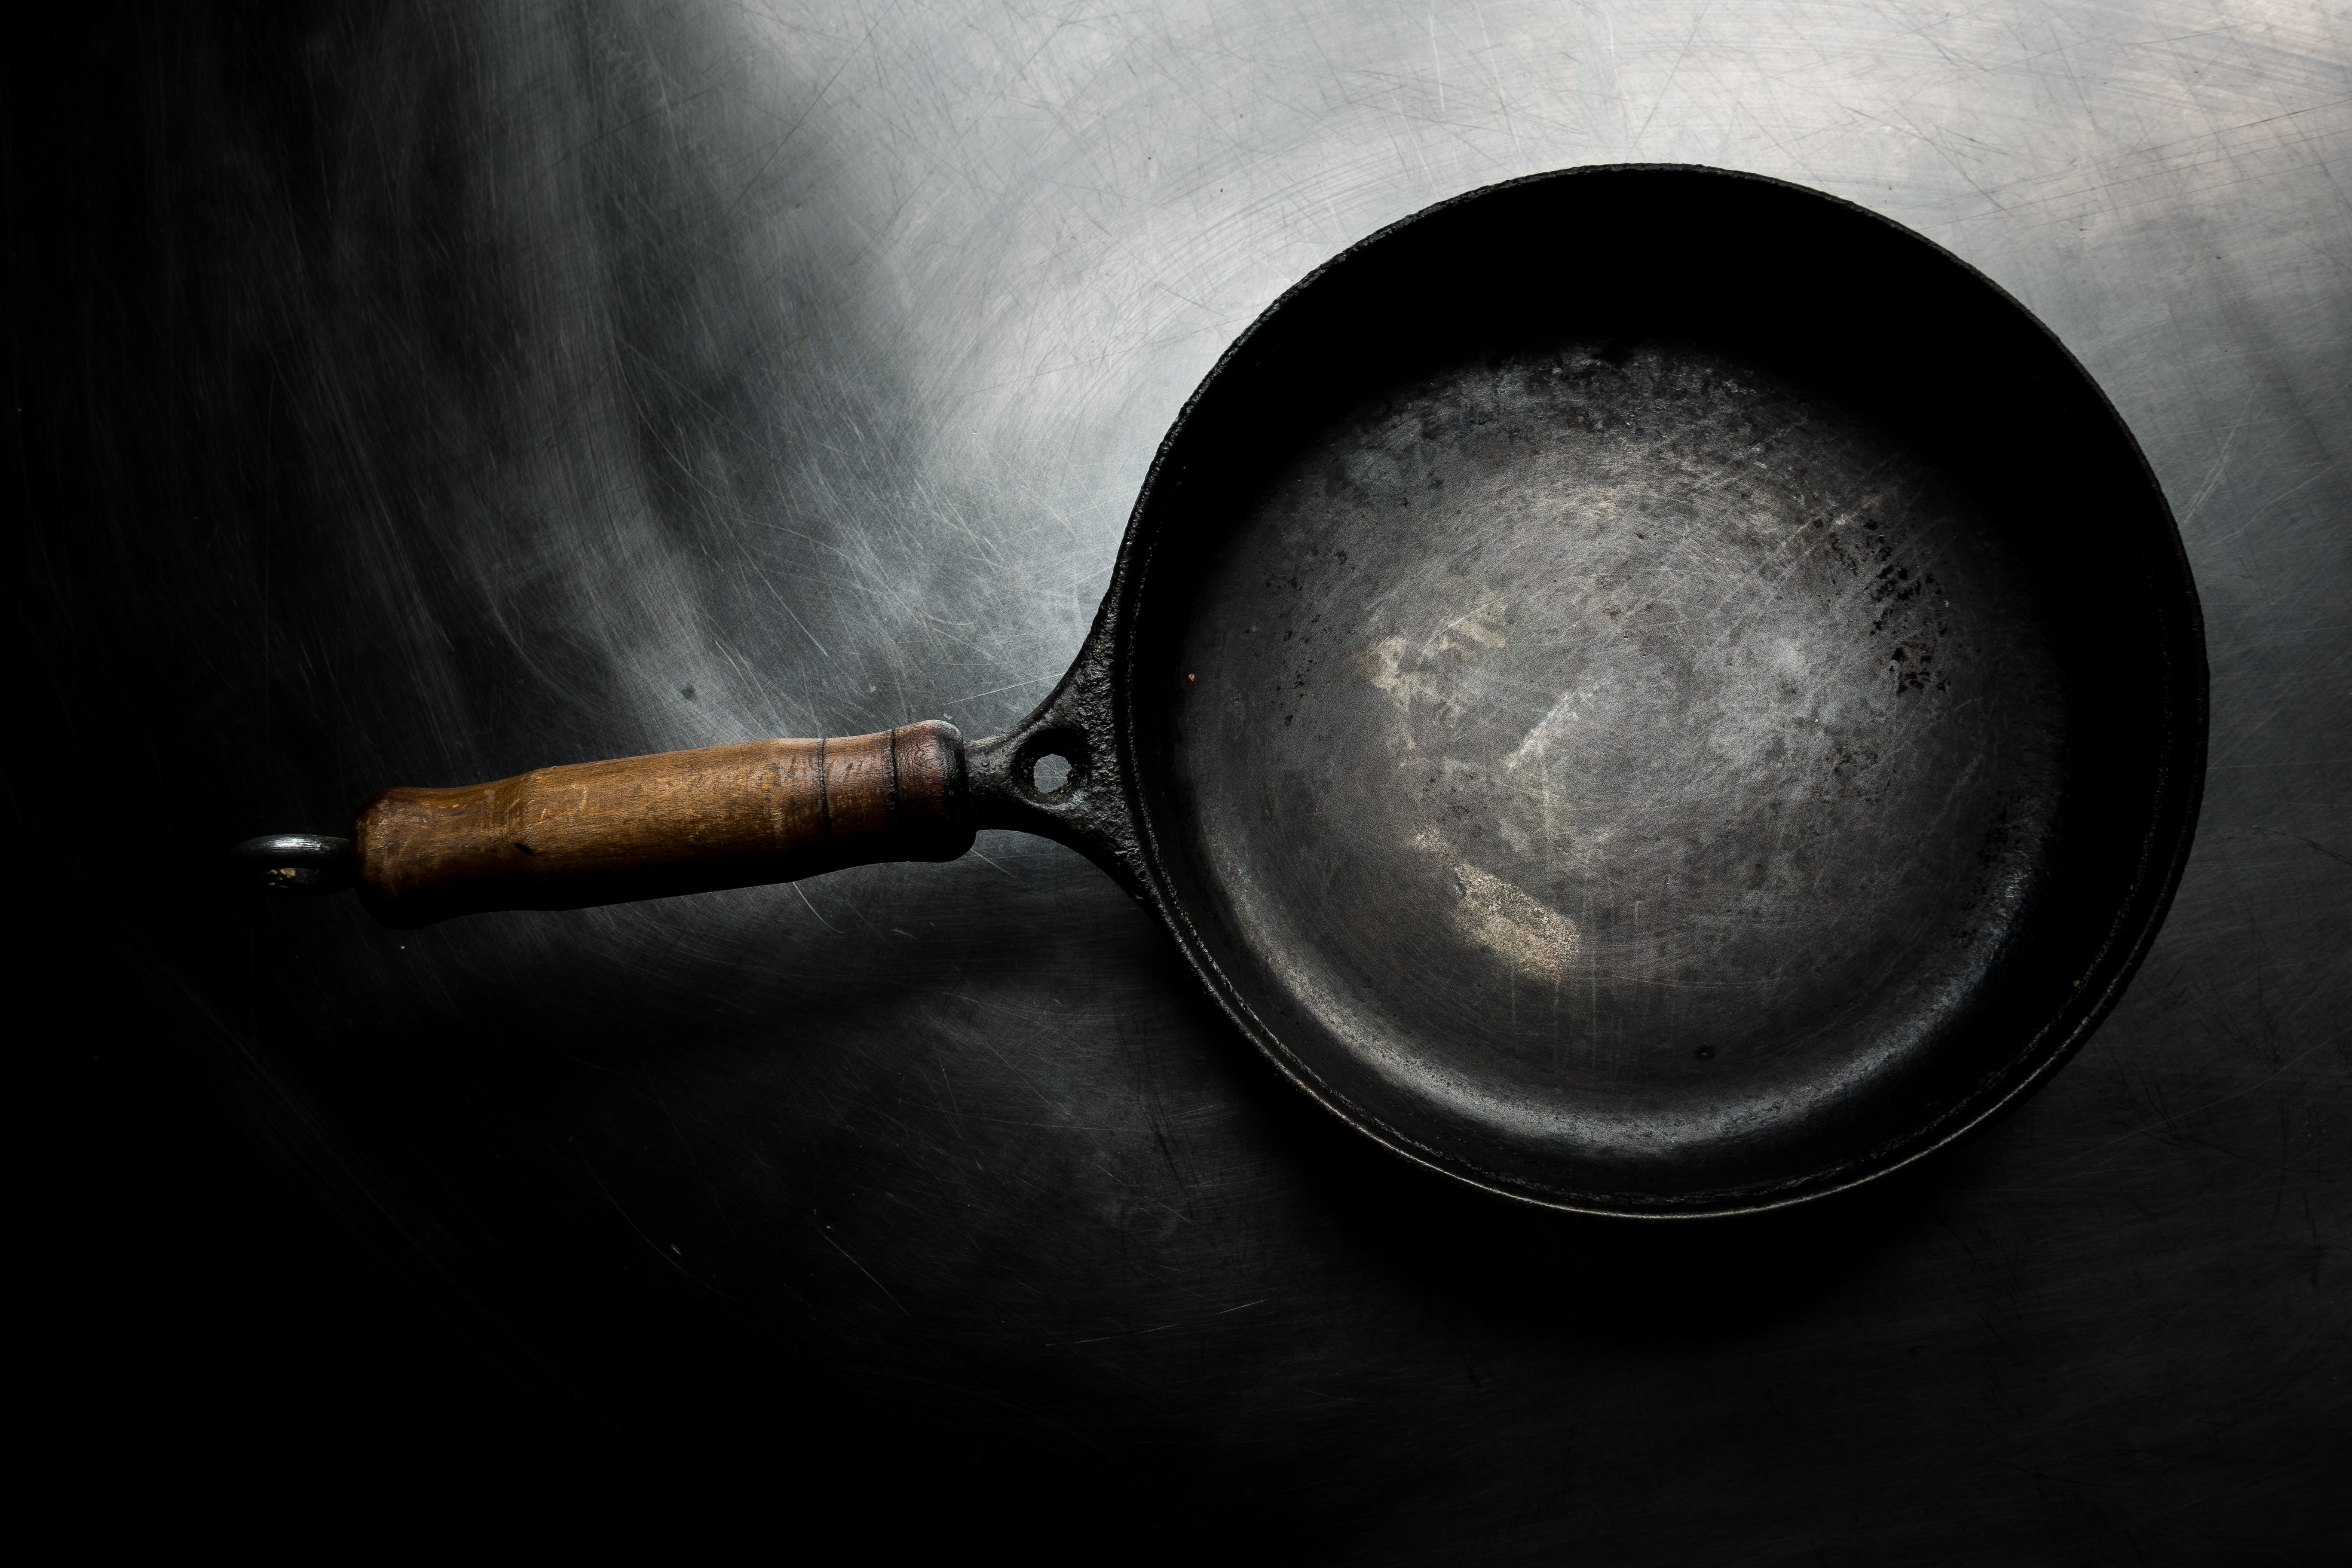 Black used carbon steel pan with wooden handle on black metallic surface